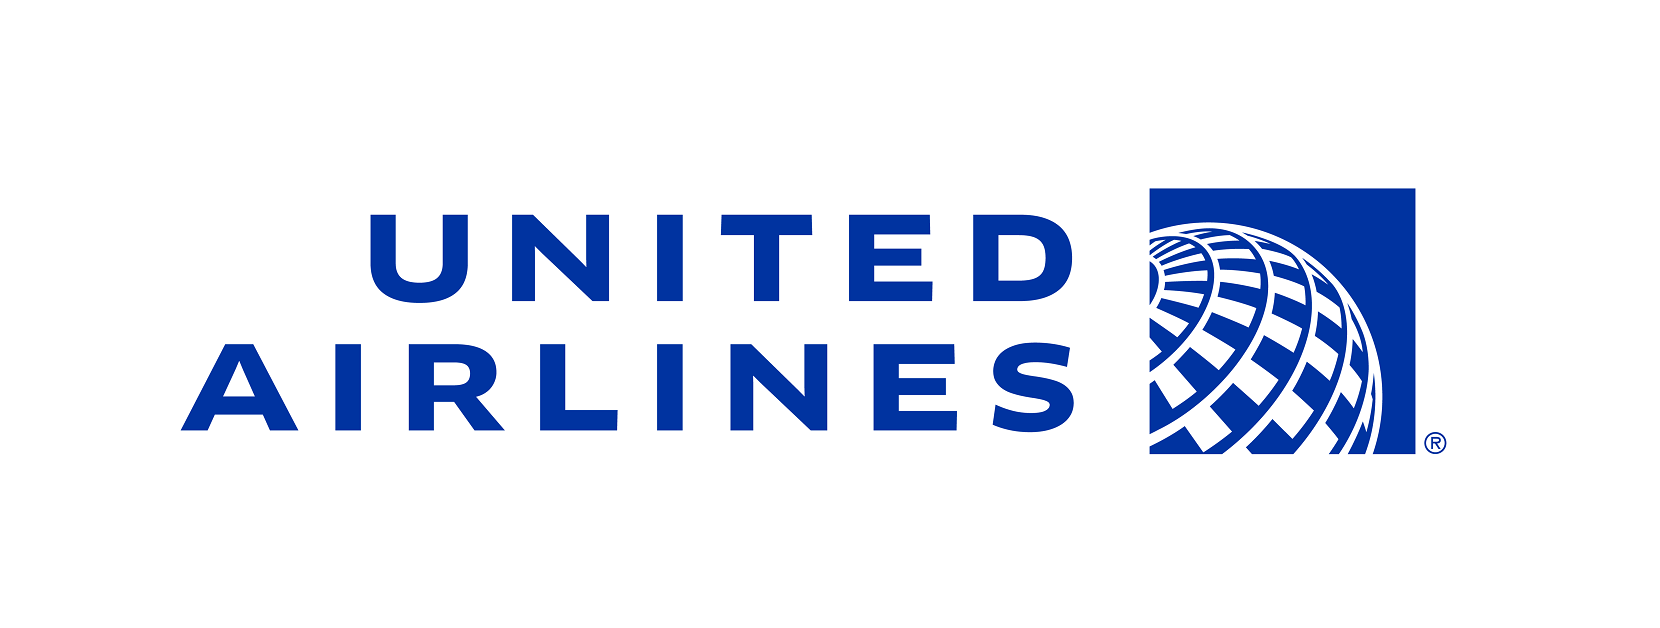 United Airlines careers